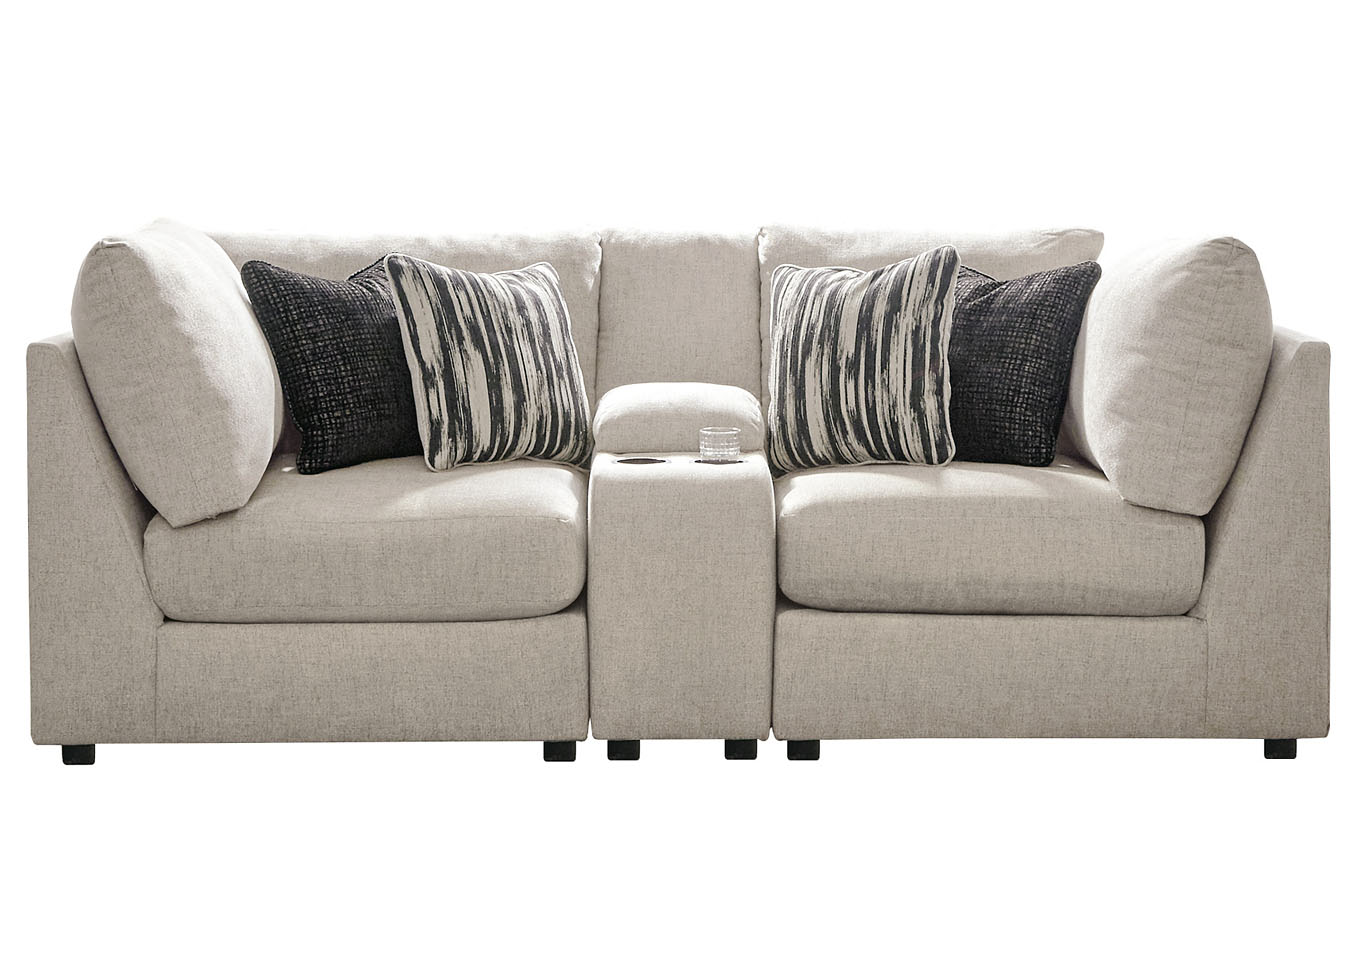 Kellway Bisque 2 Piece Sectional w/Console,Signature Design By Ashley